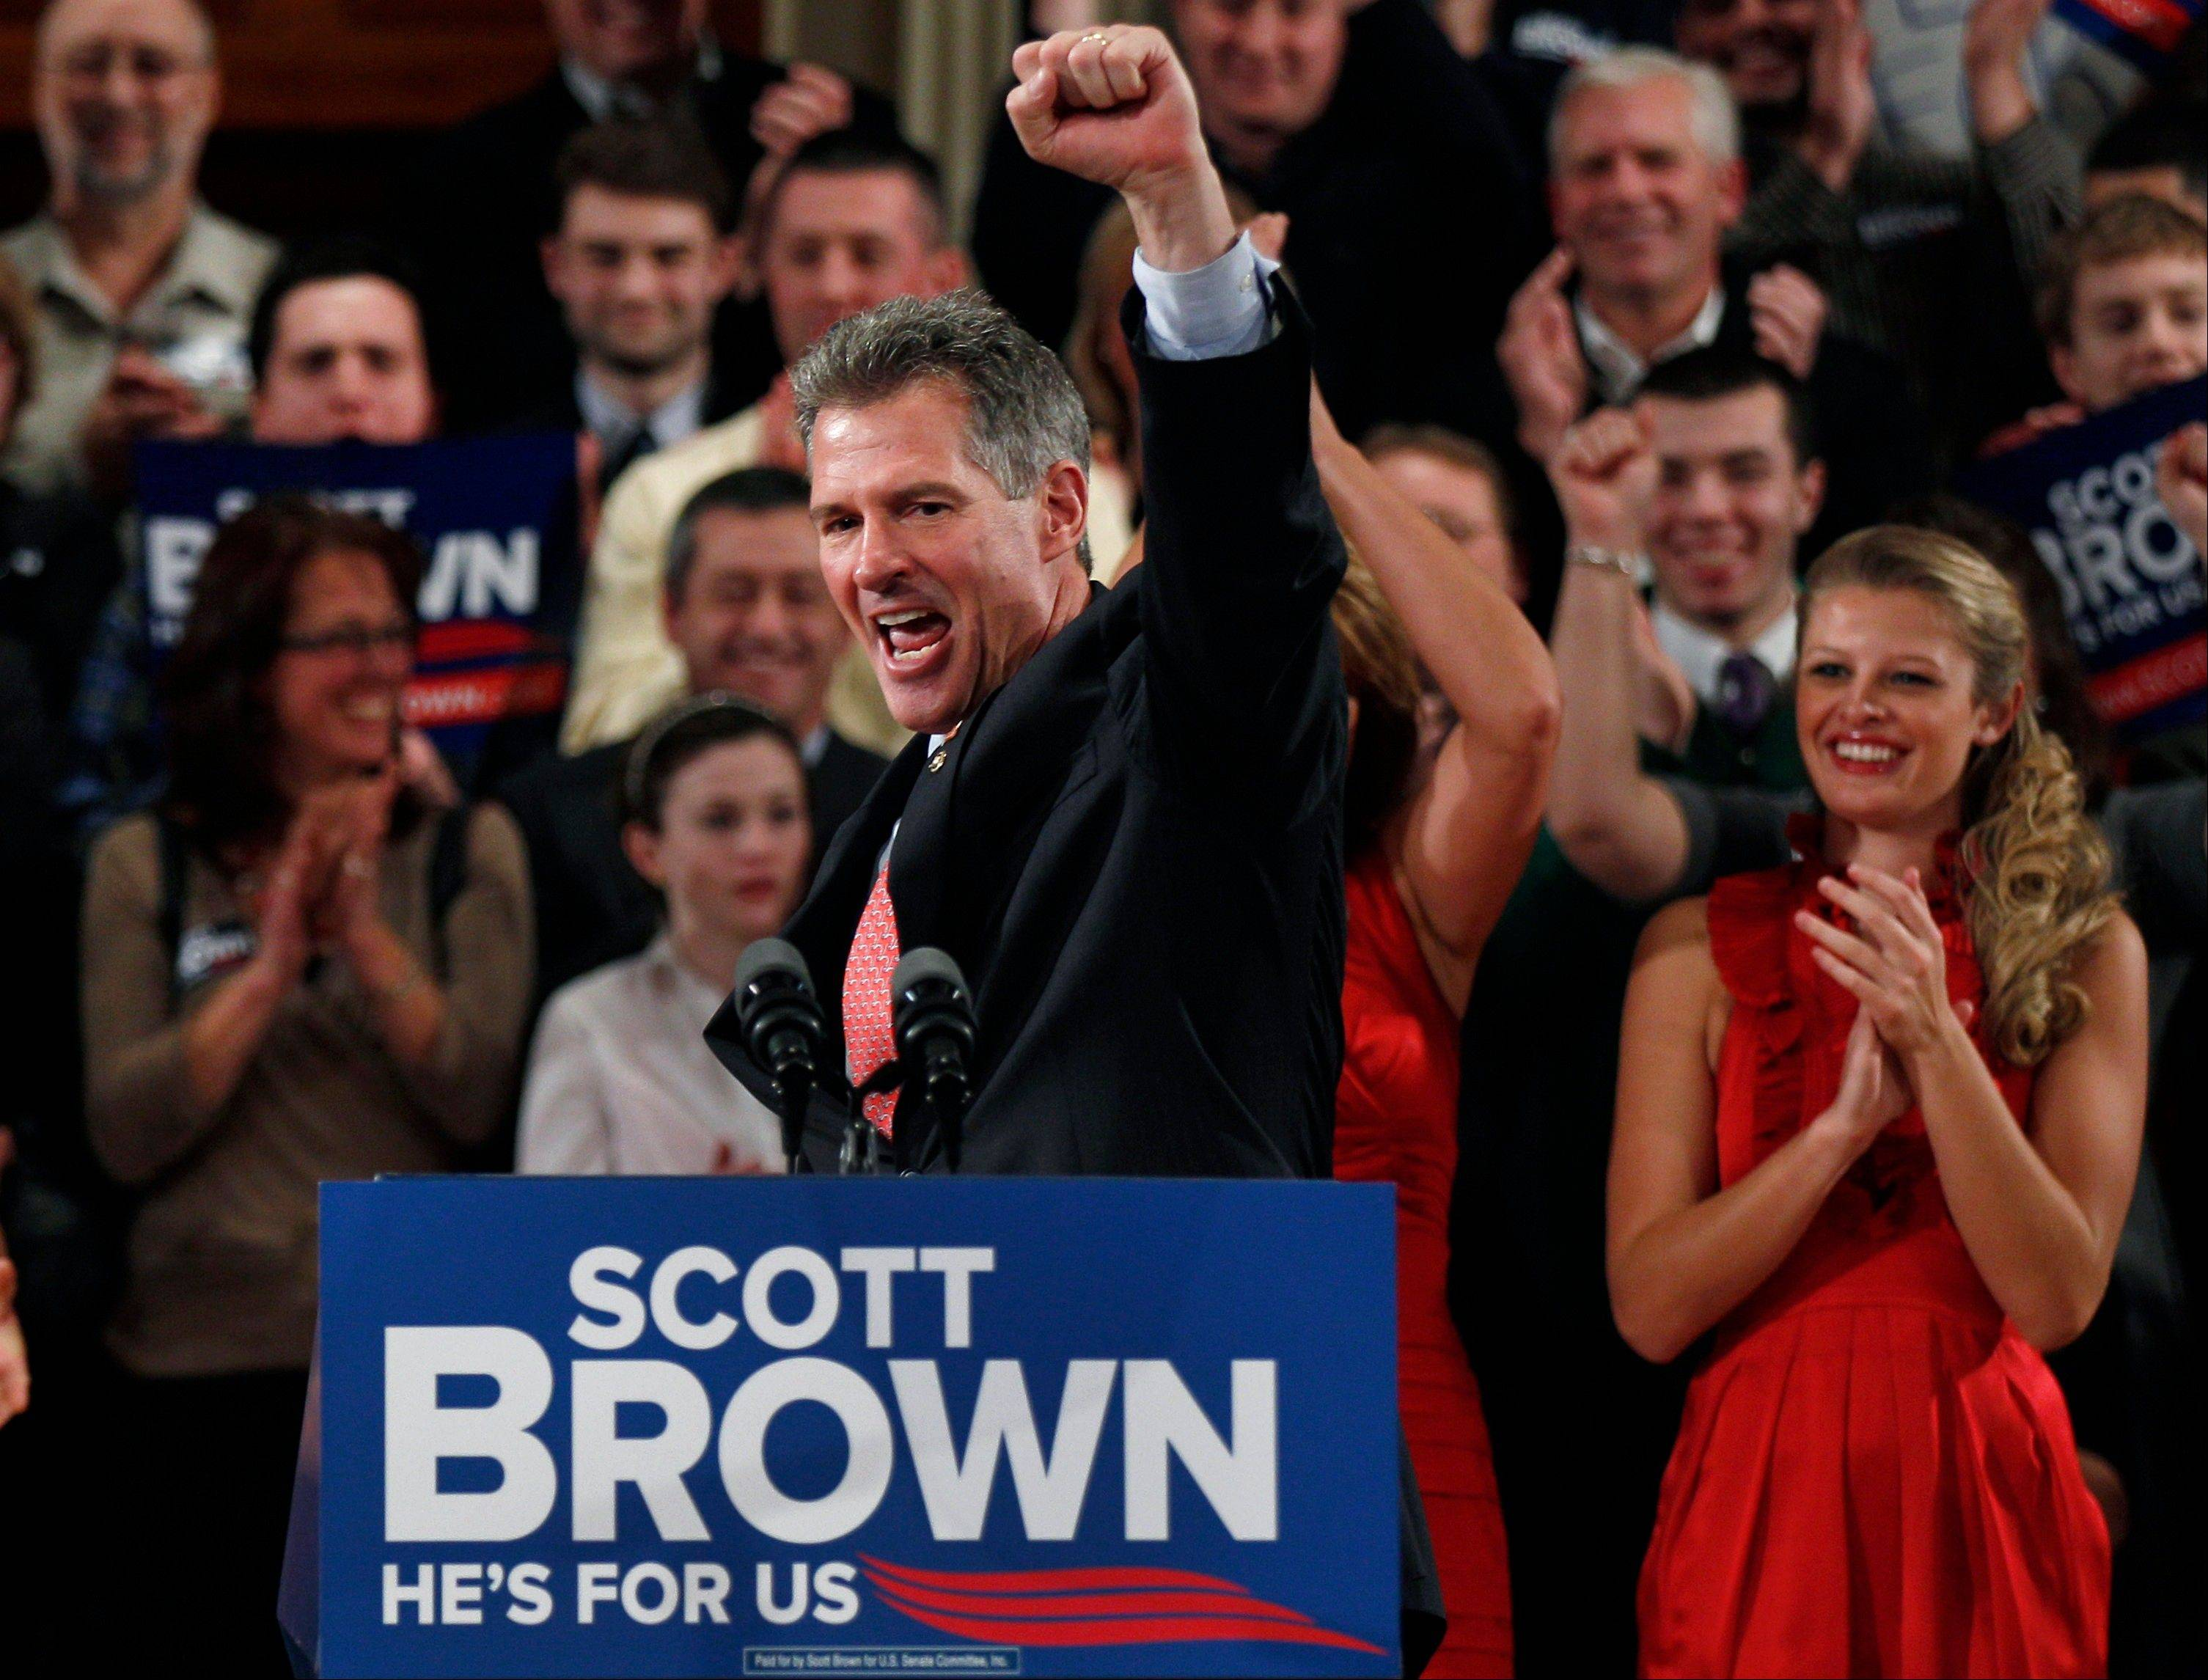 Then Massachusetts Republican Sen. Scott Brown pumps his fist during his re-election campaign kick-off in Worcester, Mass.